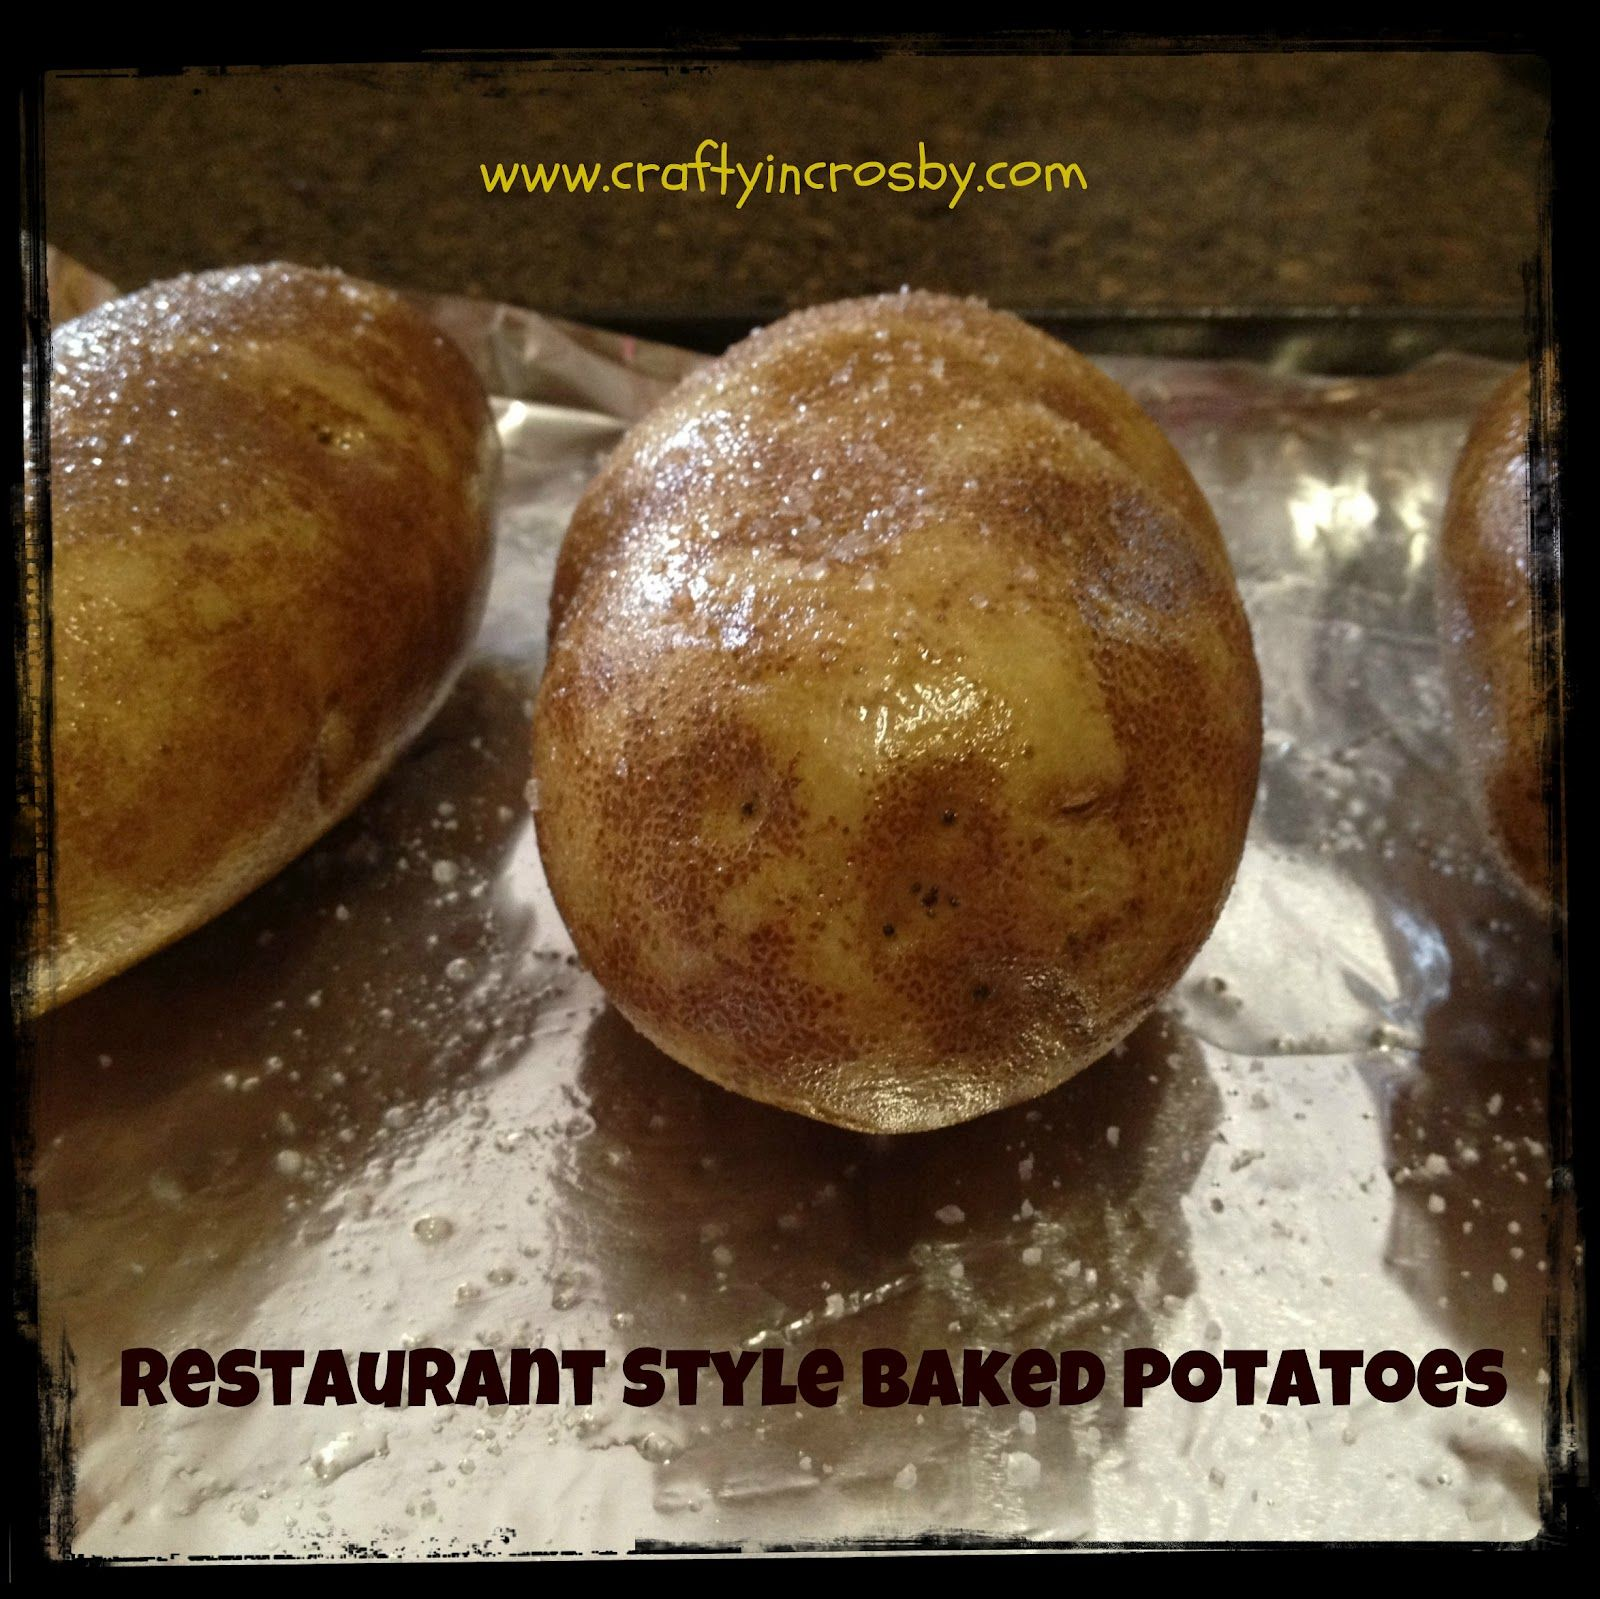 Easy Restaurant Style Baked Potatoes So Much Better Than The Hour Bake Time I Learned Growing Up